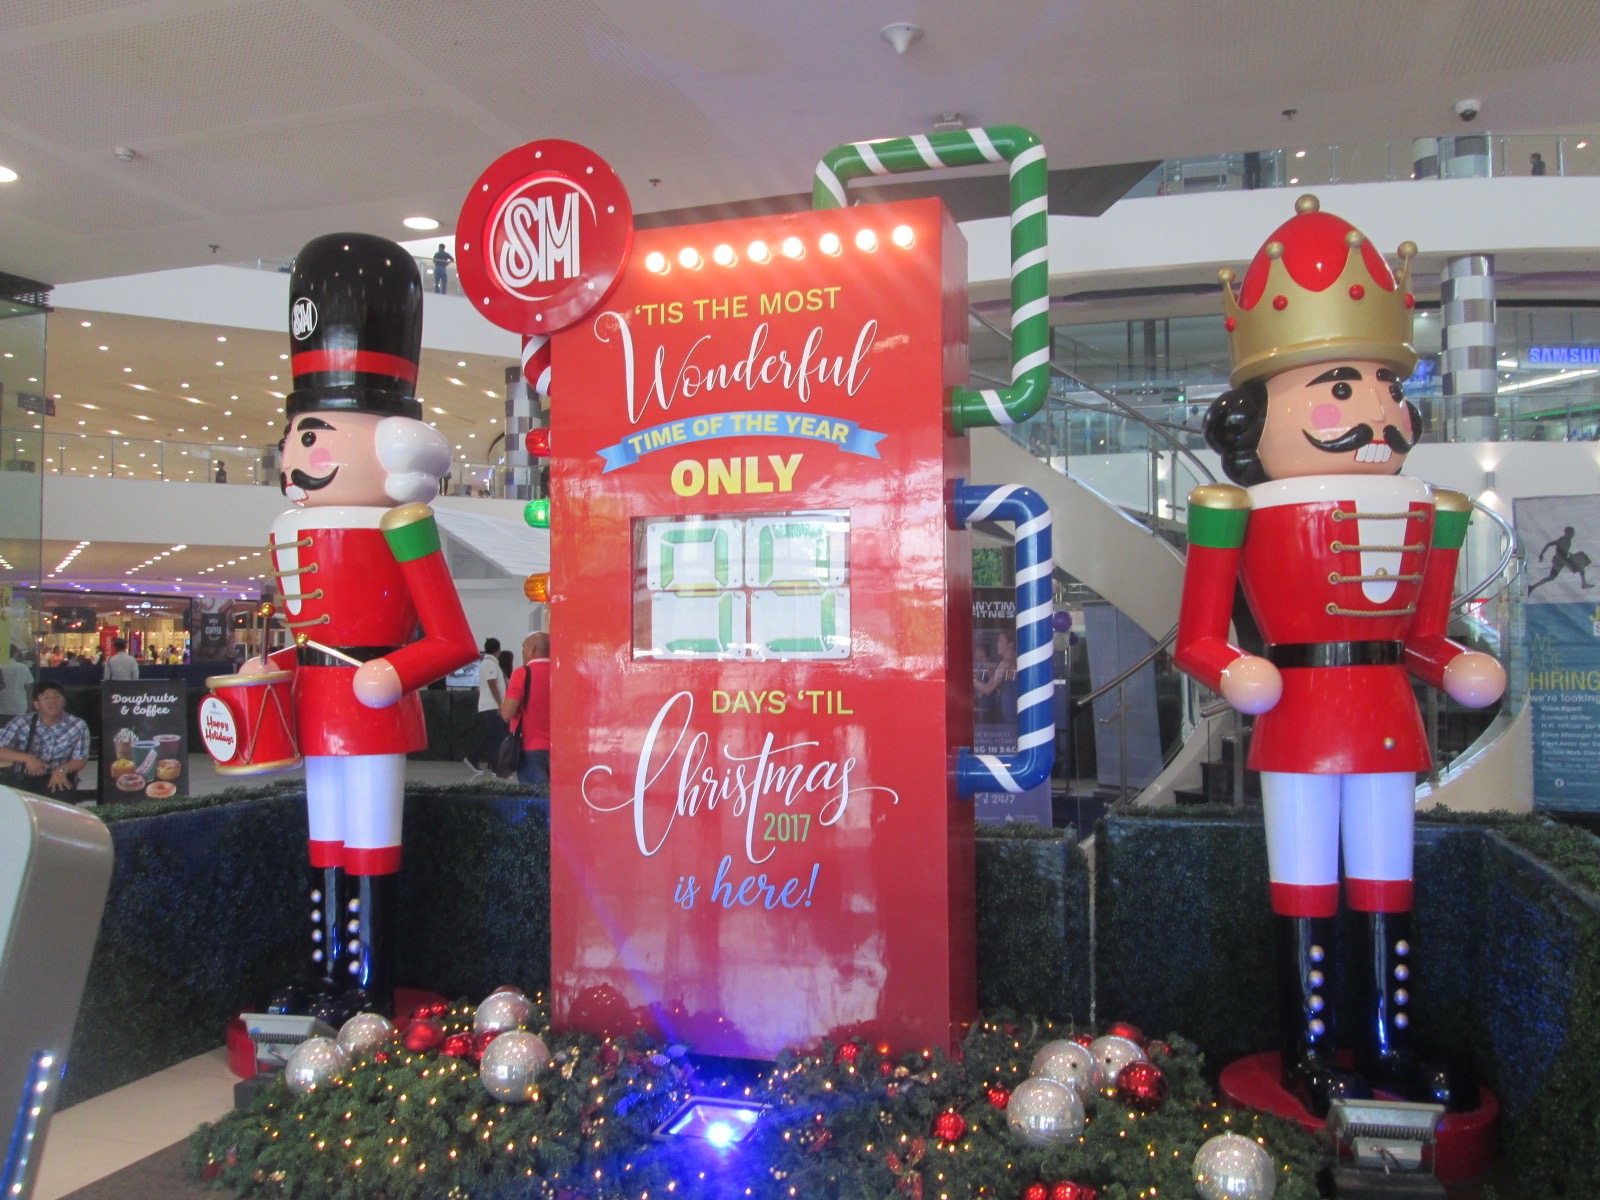 Until Christmas 99 Days Till Christmas.Philippinefails Only 99 Days Until Christmas